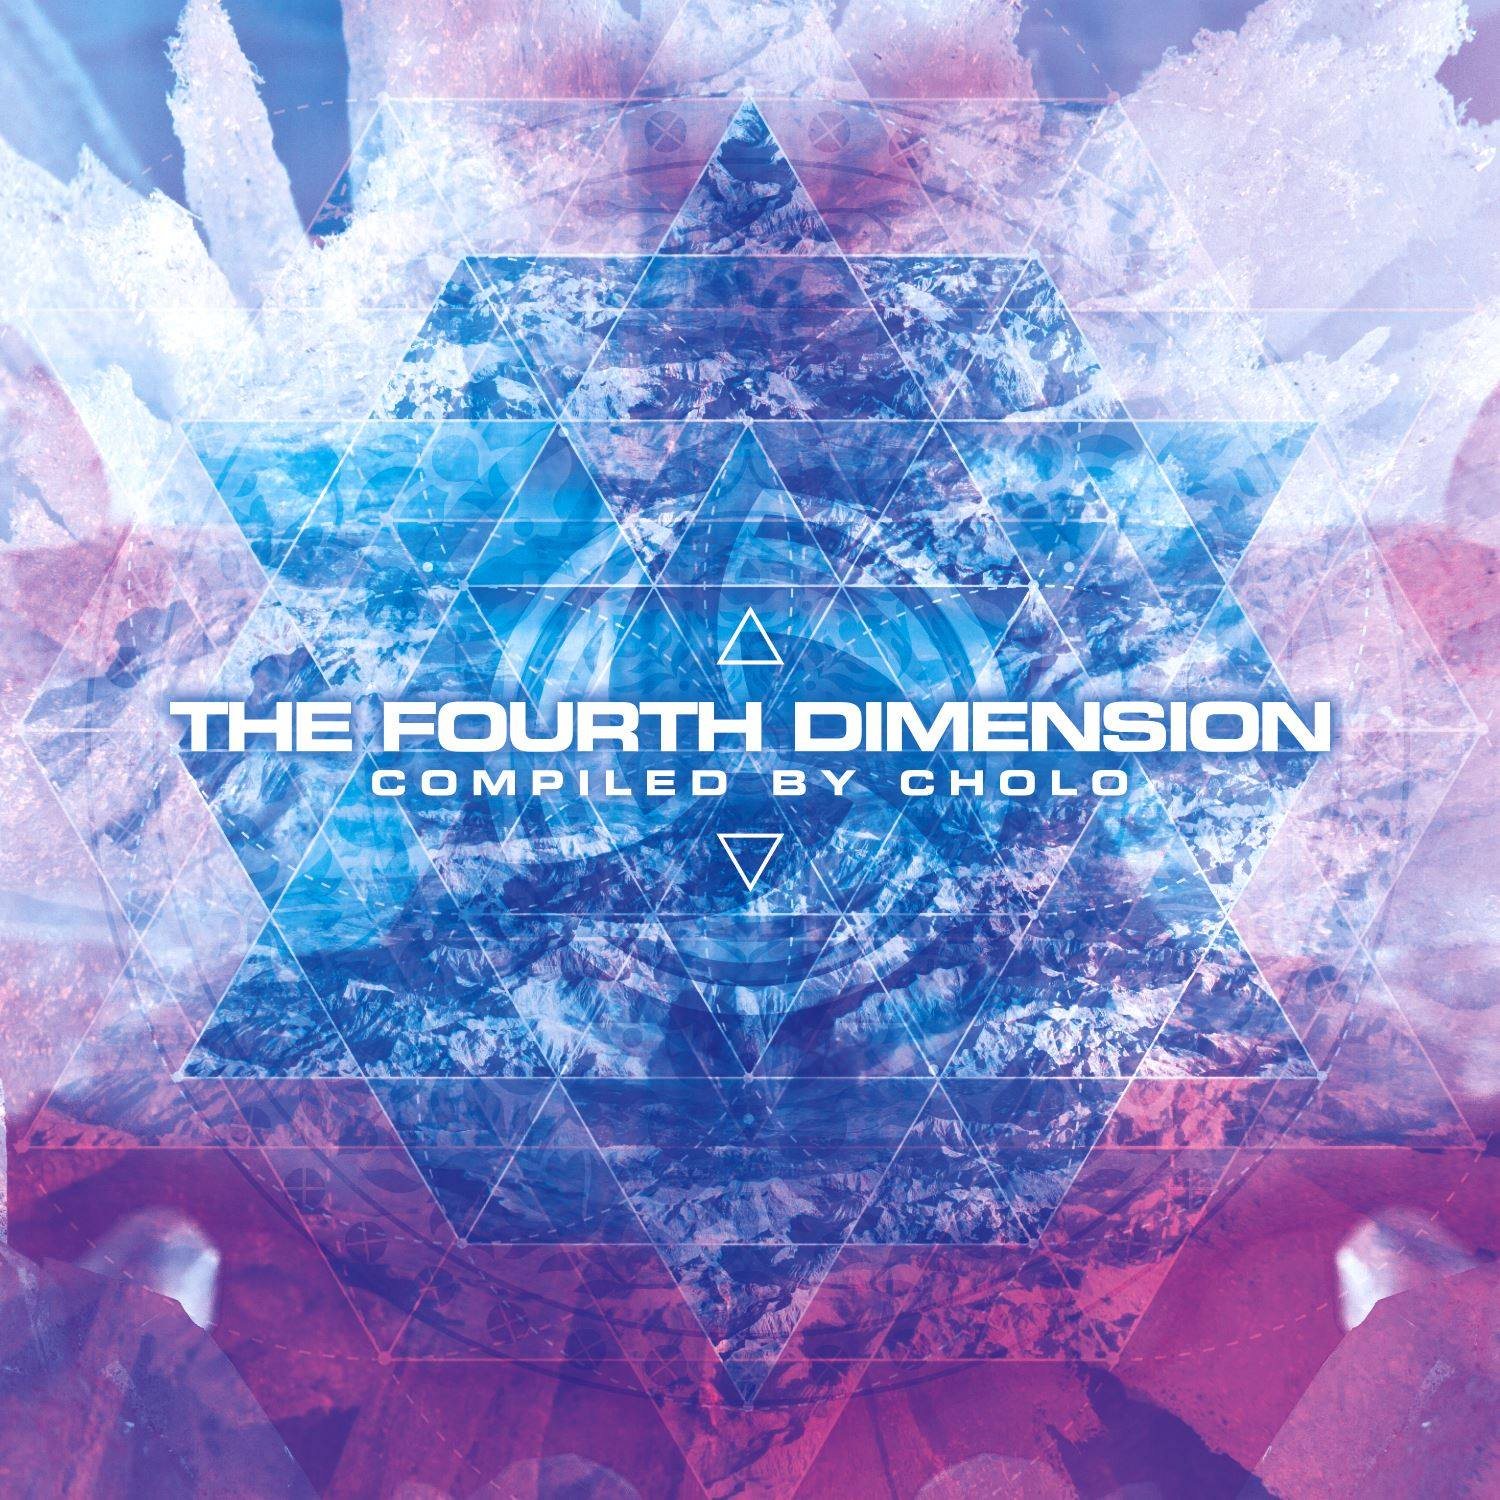 The Fourth Dimension V/A compiled by Cho